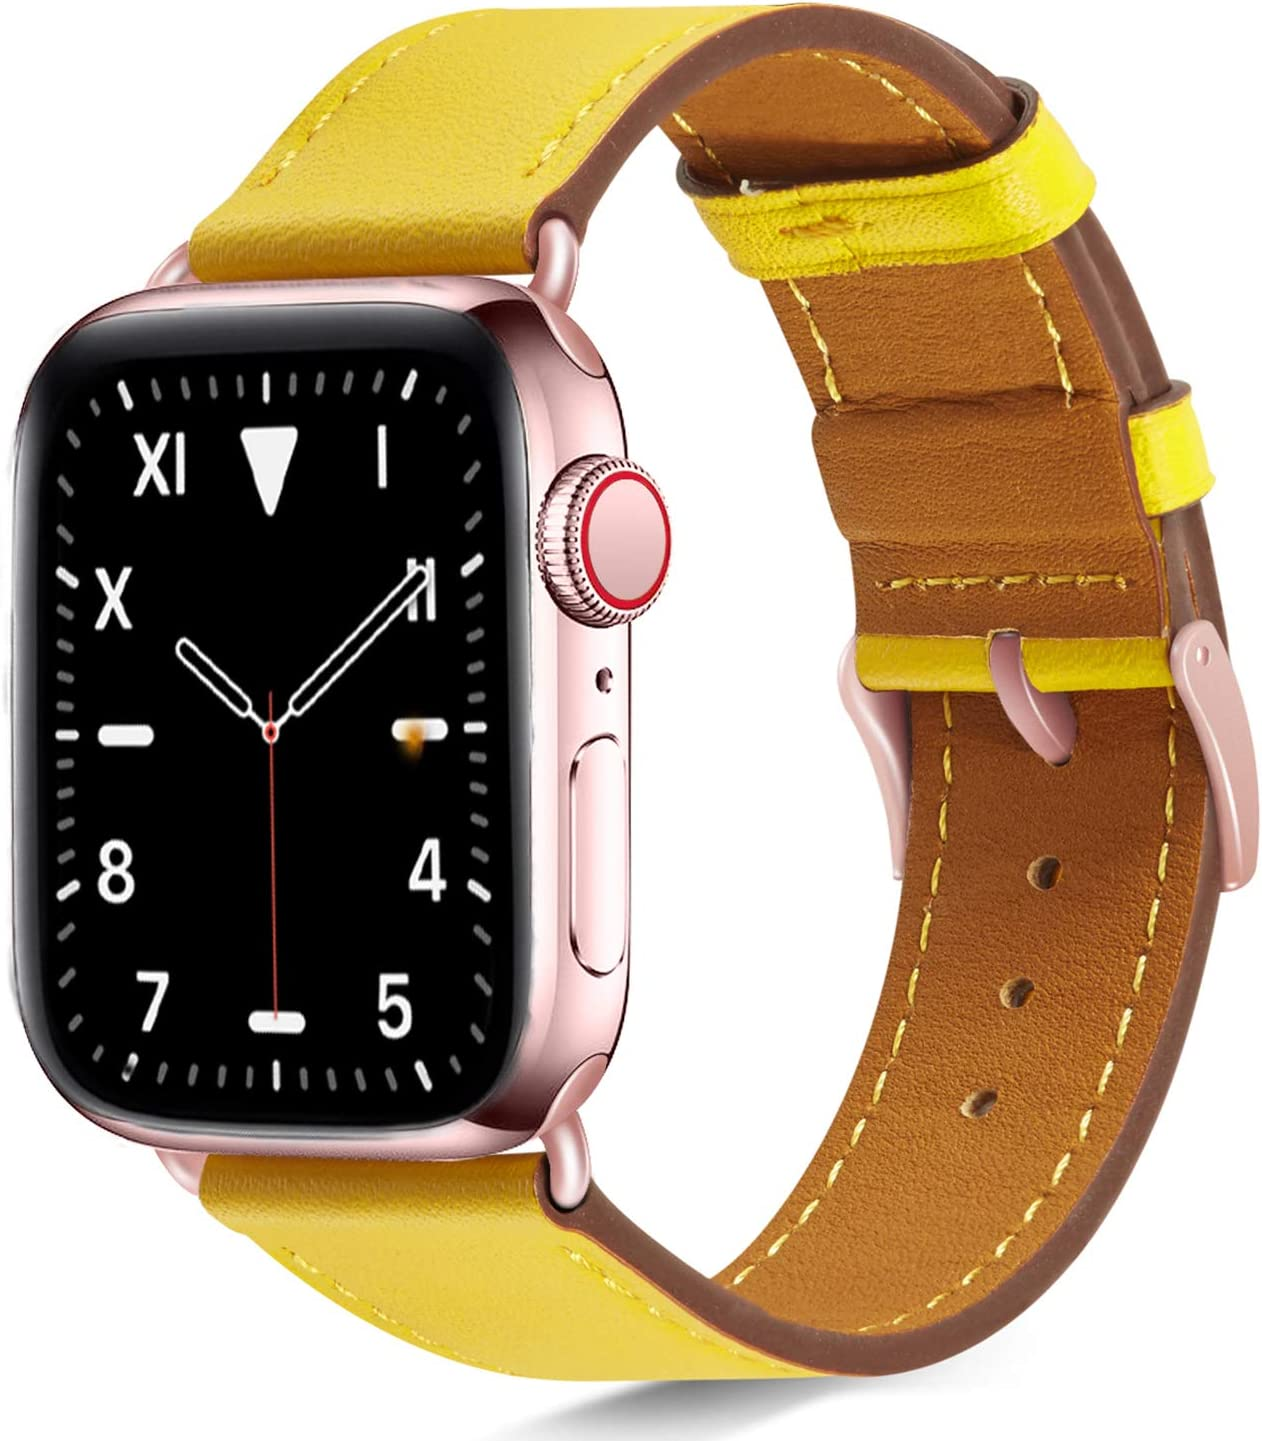 Compatible with apple watch band 38mm 40mm for iWatch Bands Series 6 5 4 3 2 1 SE Women , Pierre Case Durable Genuine Leather Replacement Strap, Adjustable Stainless Metal Clasp,Yellow